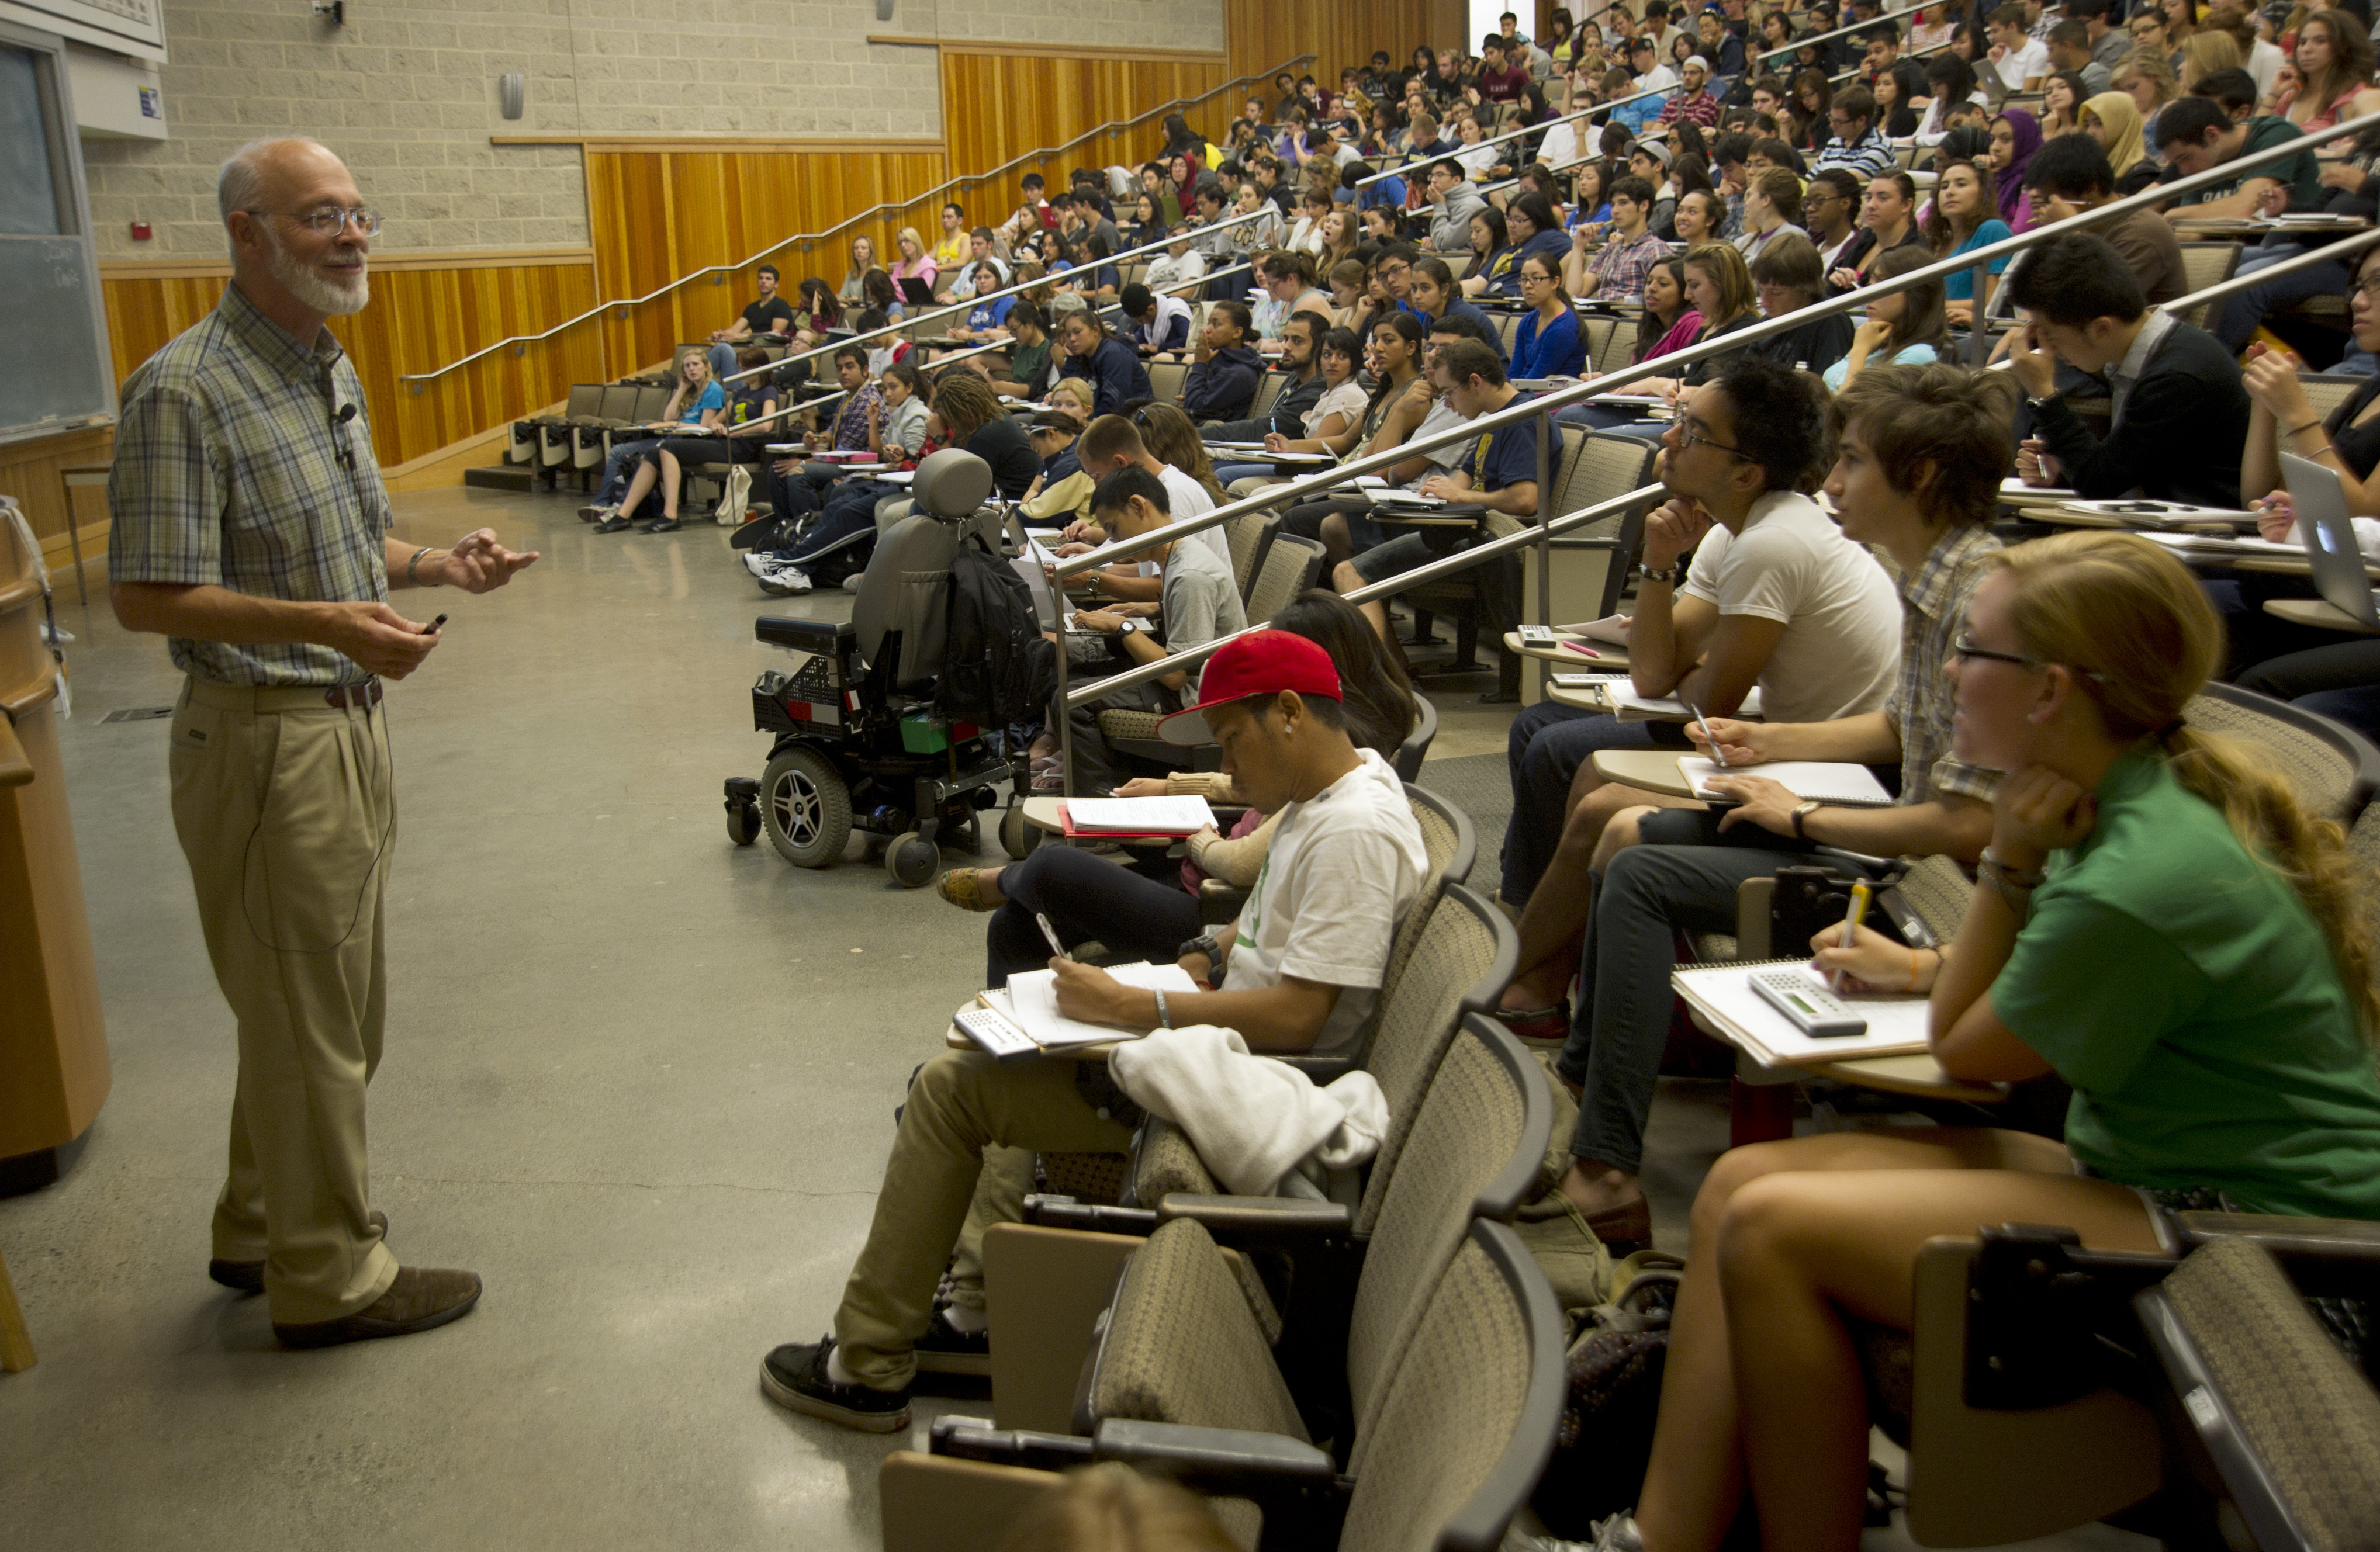 Professor instructing students during a lecture